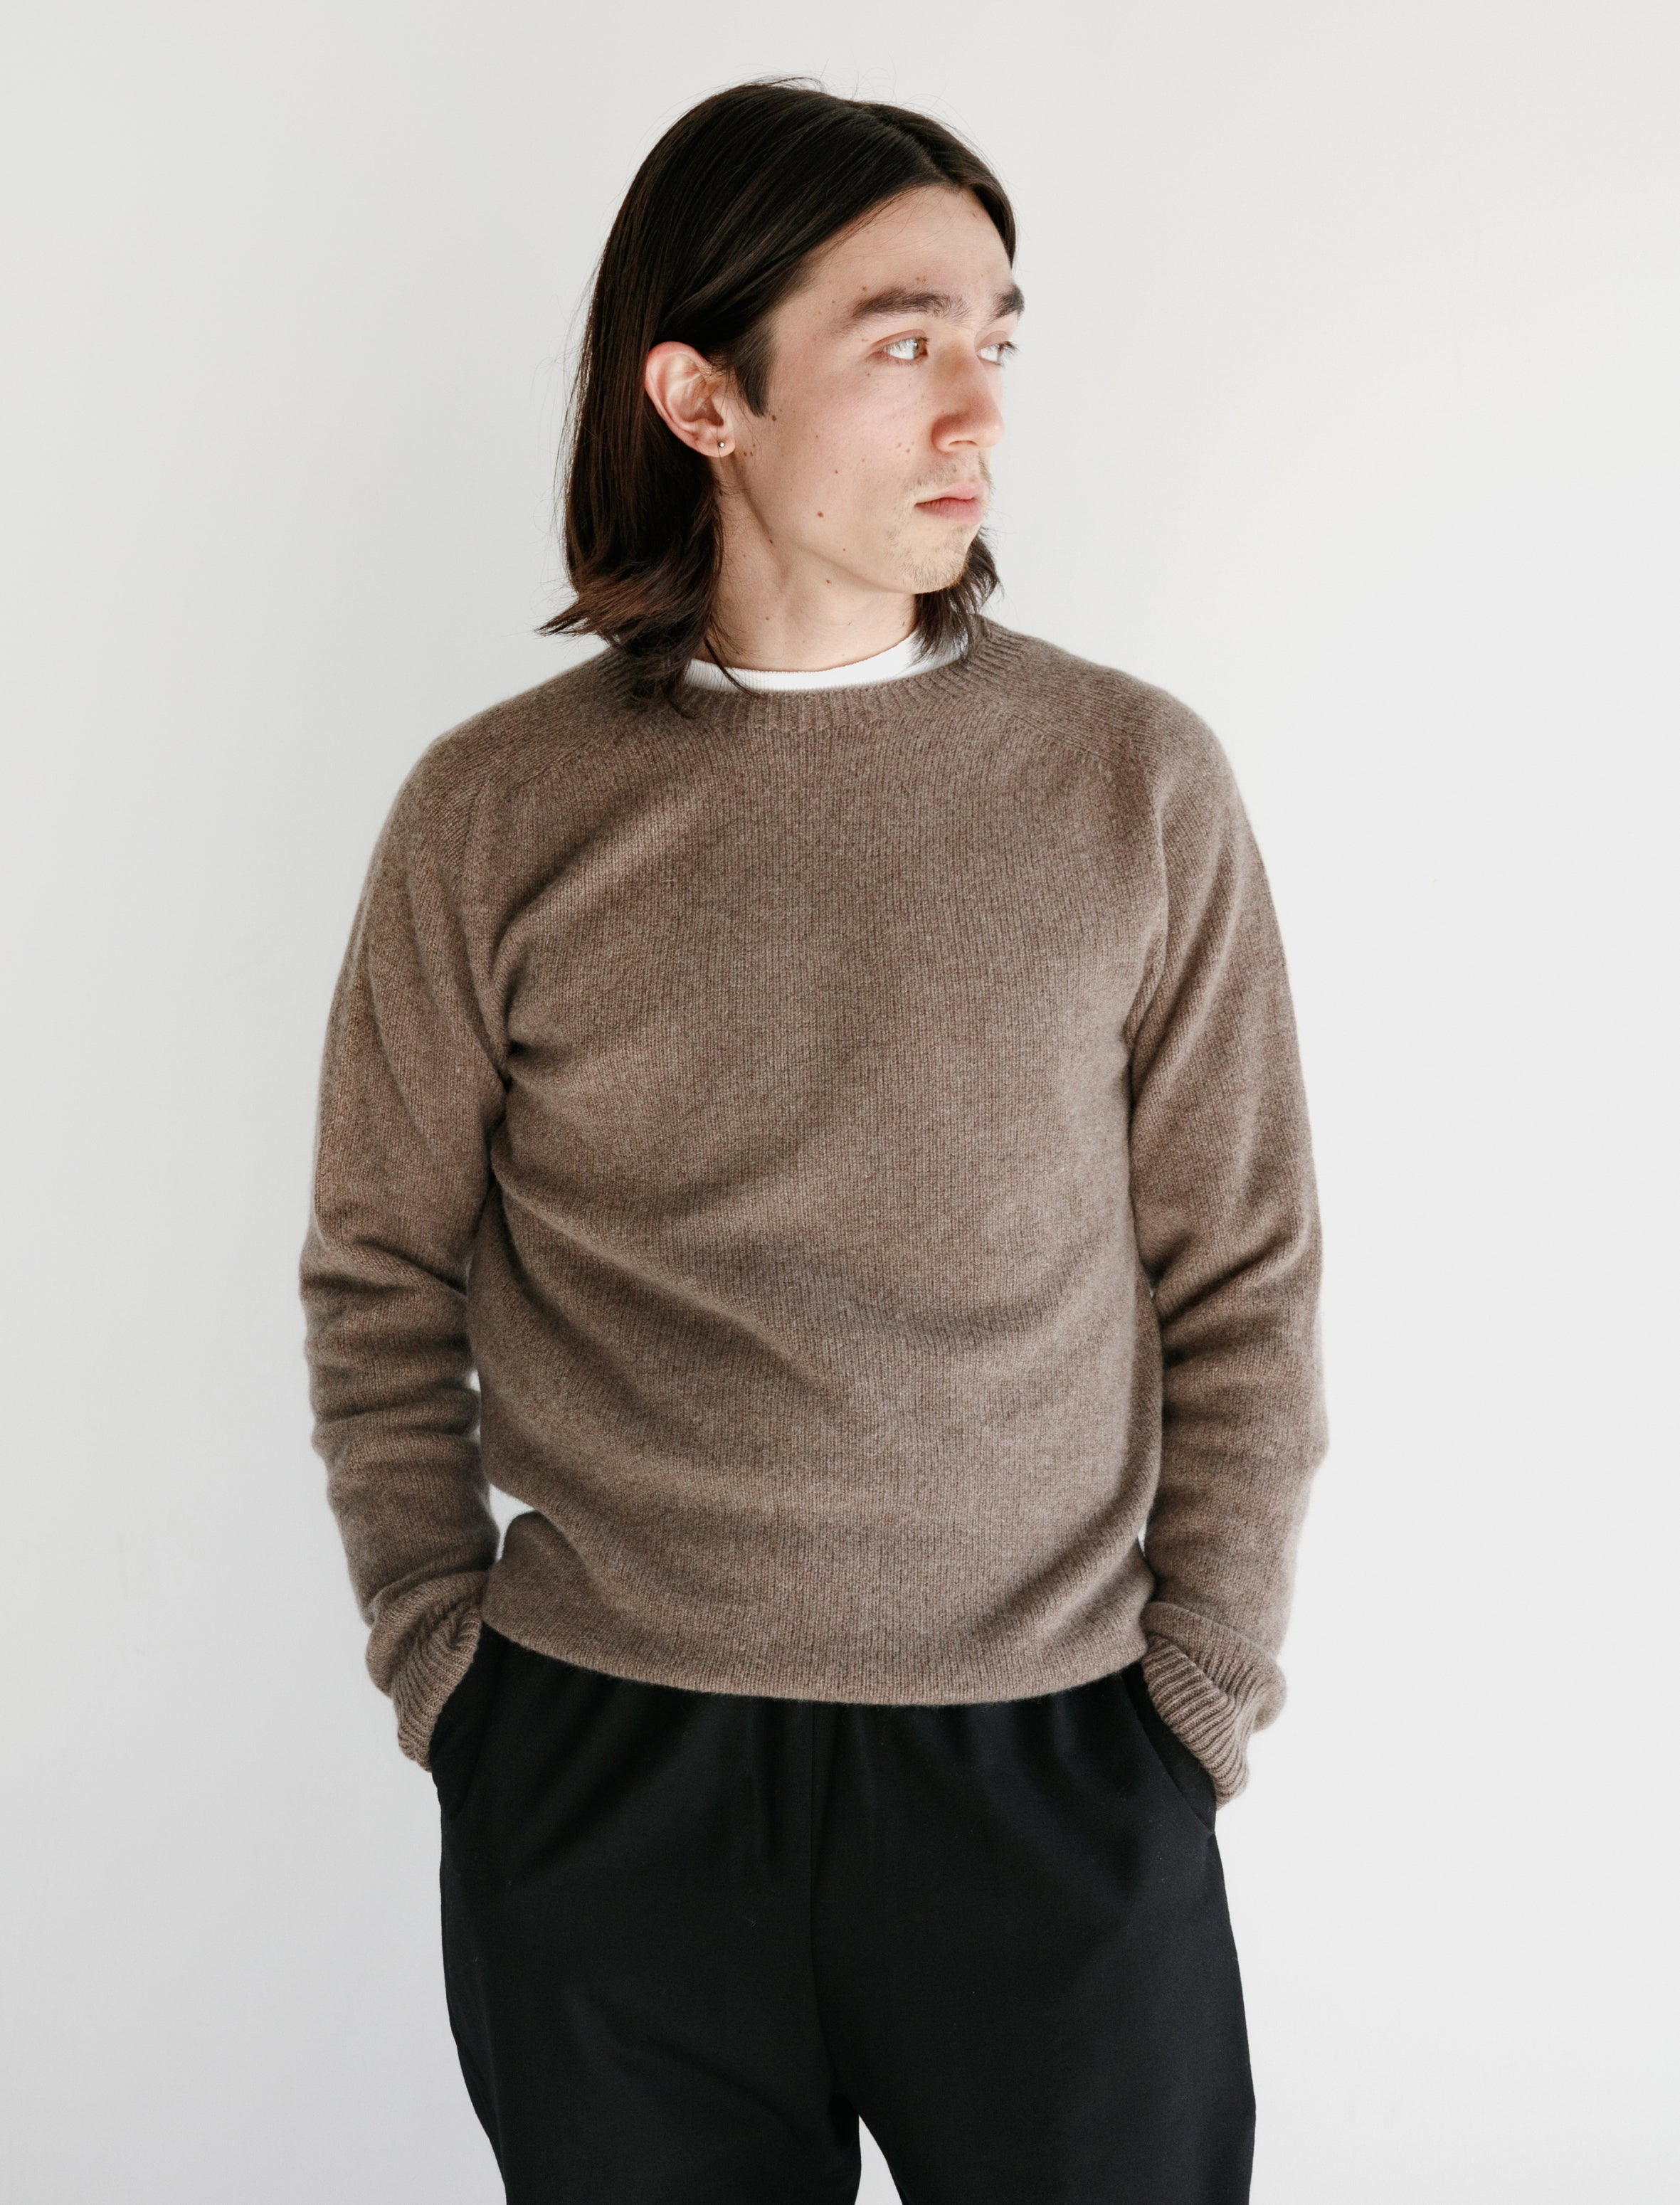 Neighbour Merino Cashmere Sweater Oatmeal